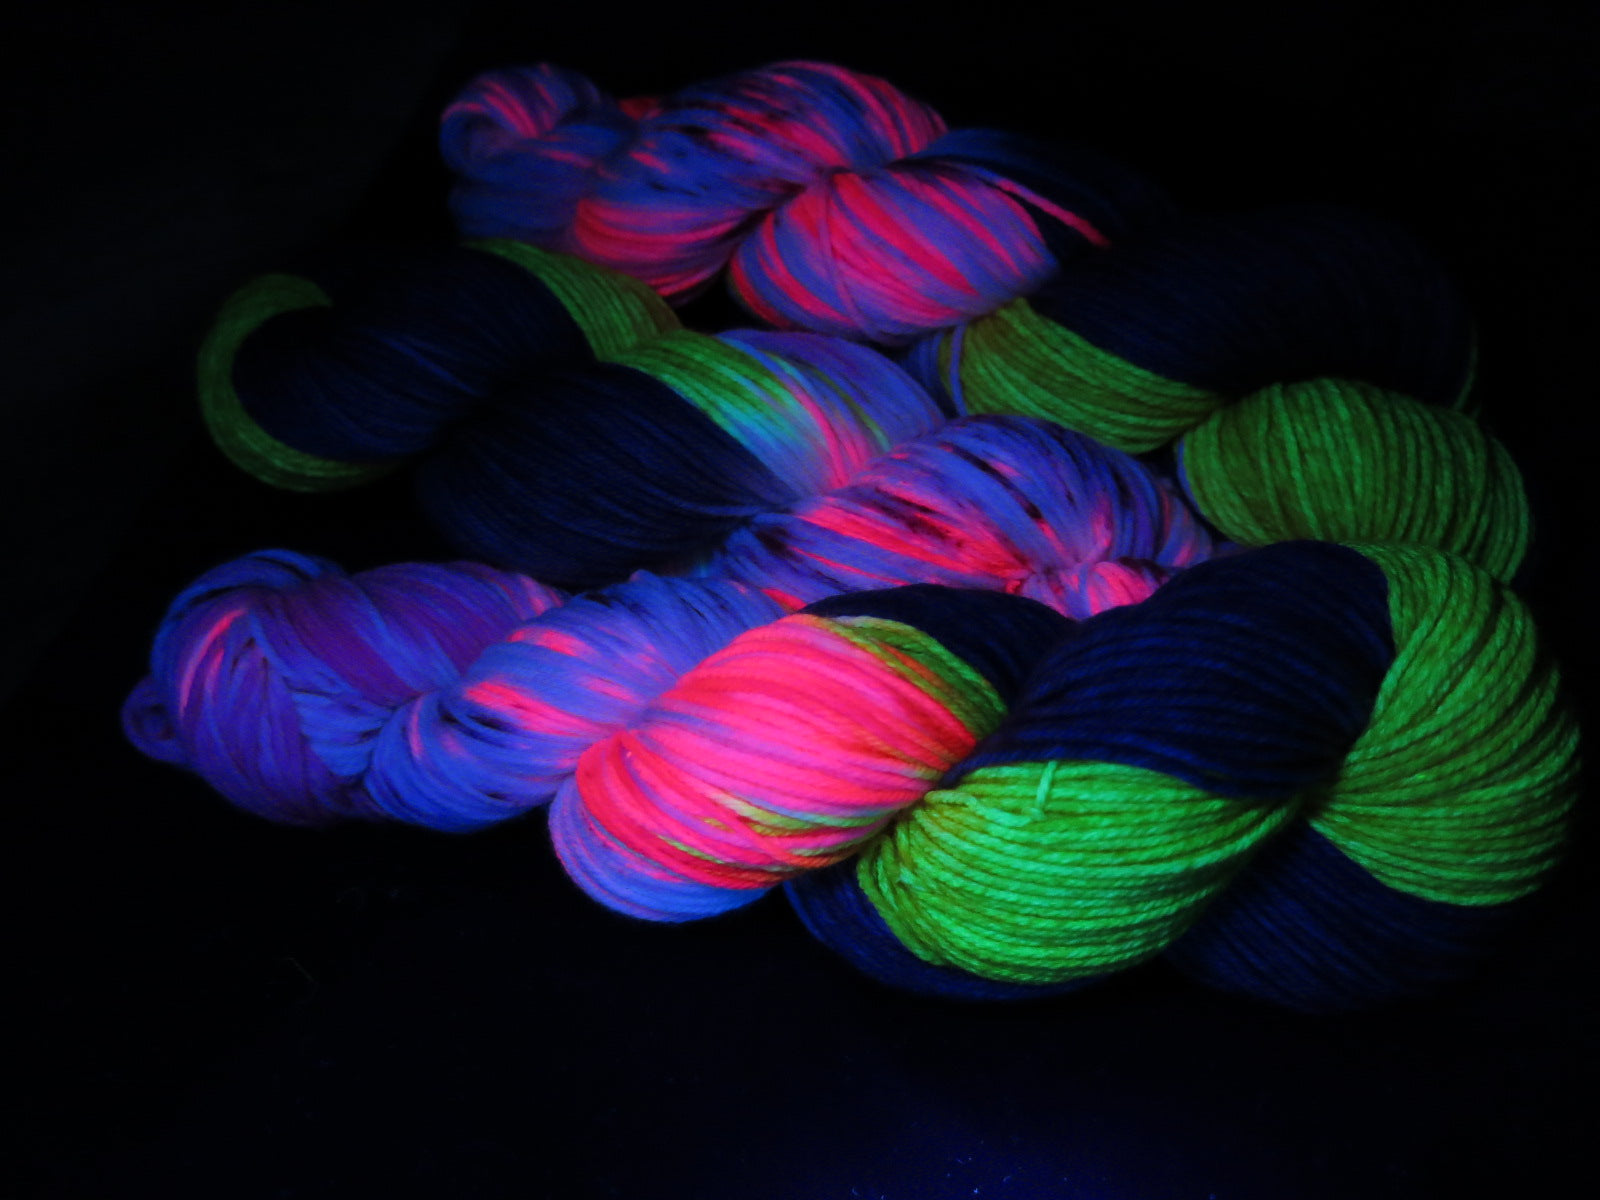 uv reactive yarn fluorescing under black light